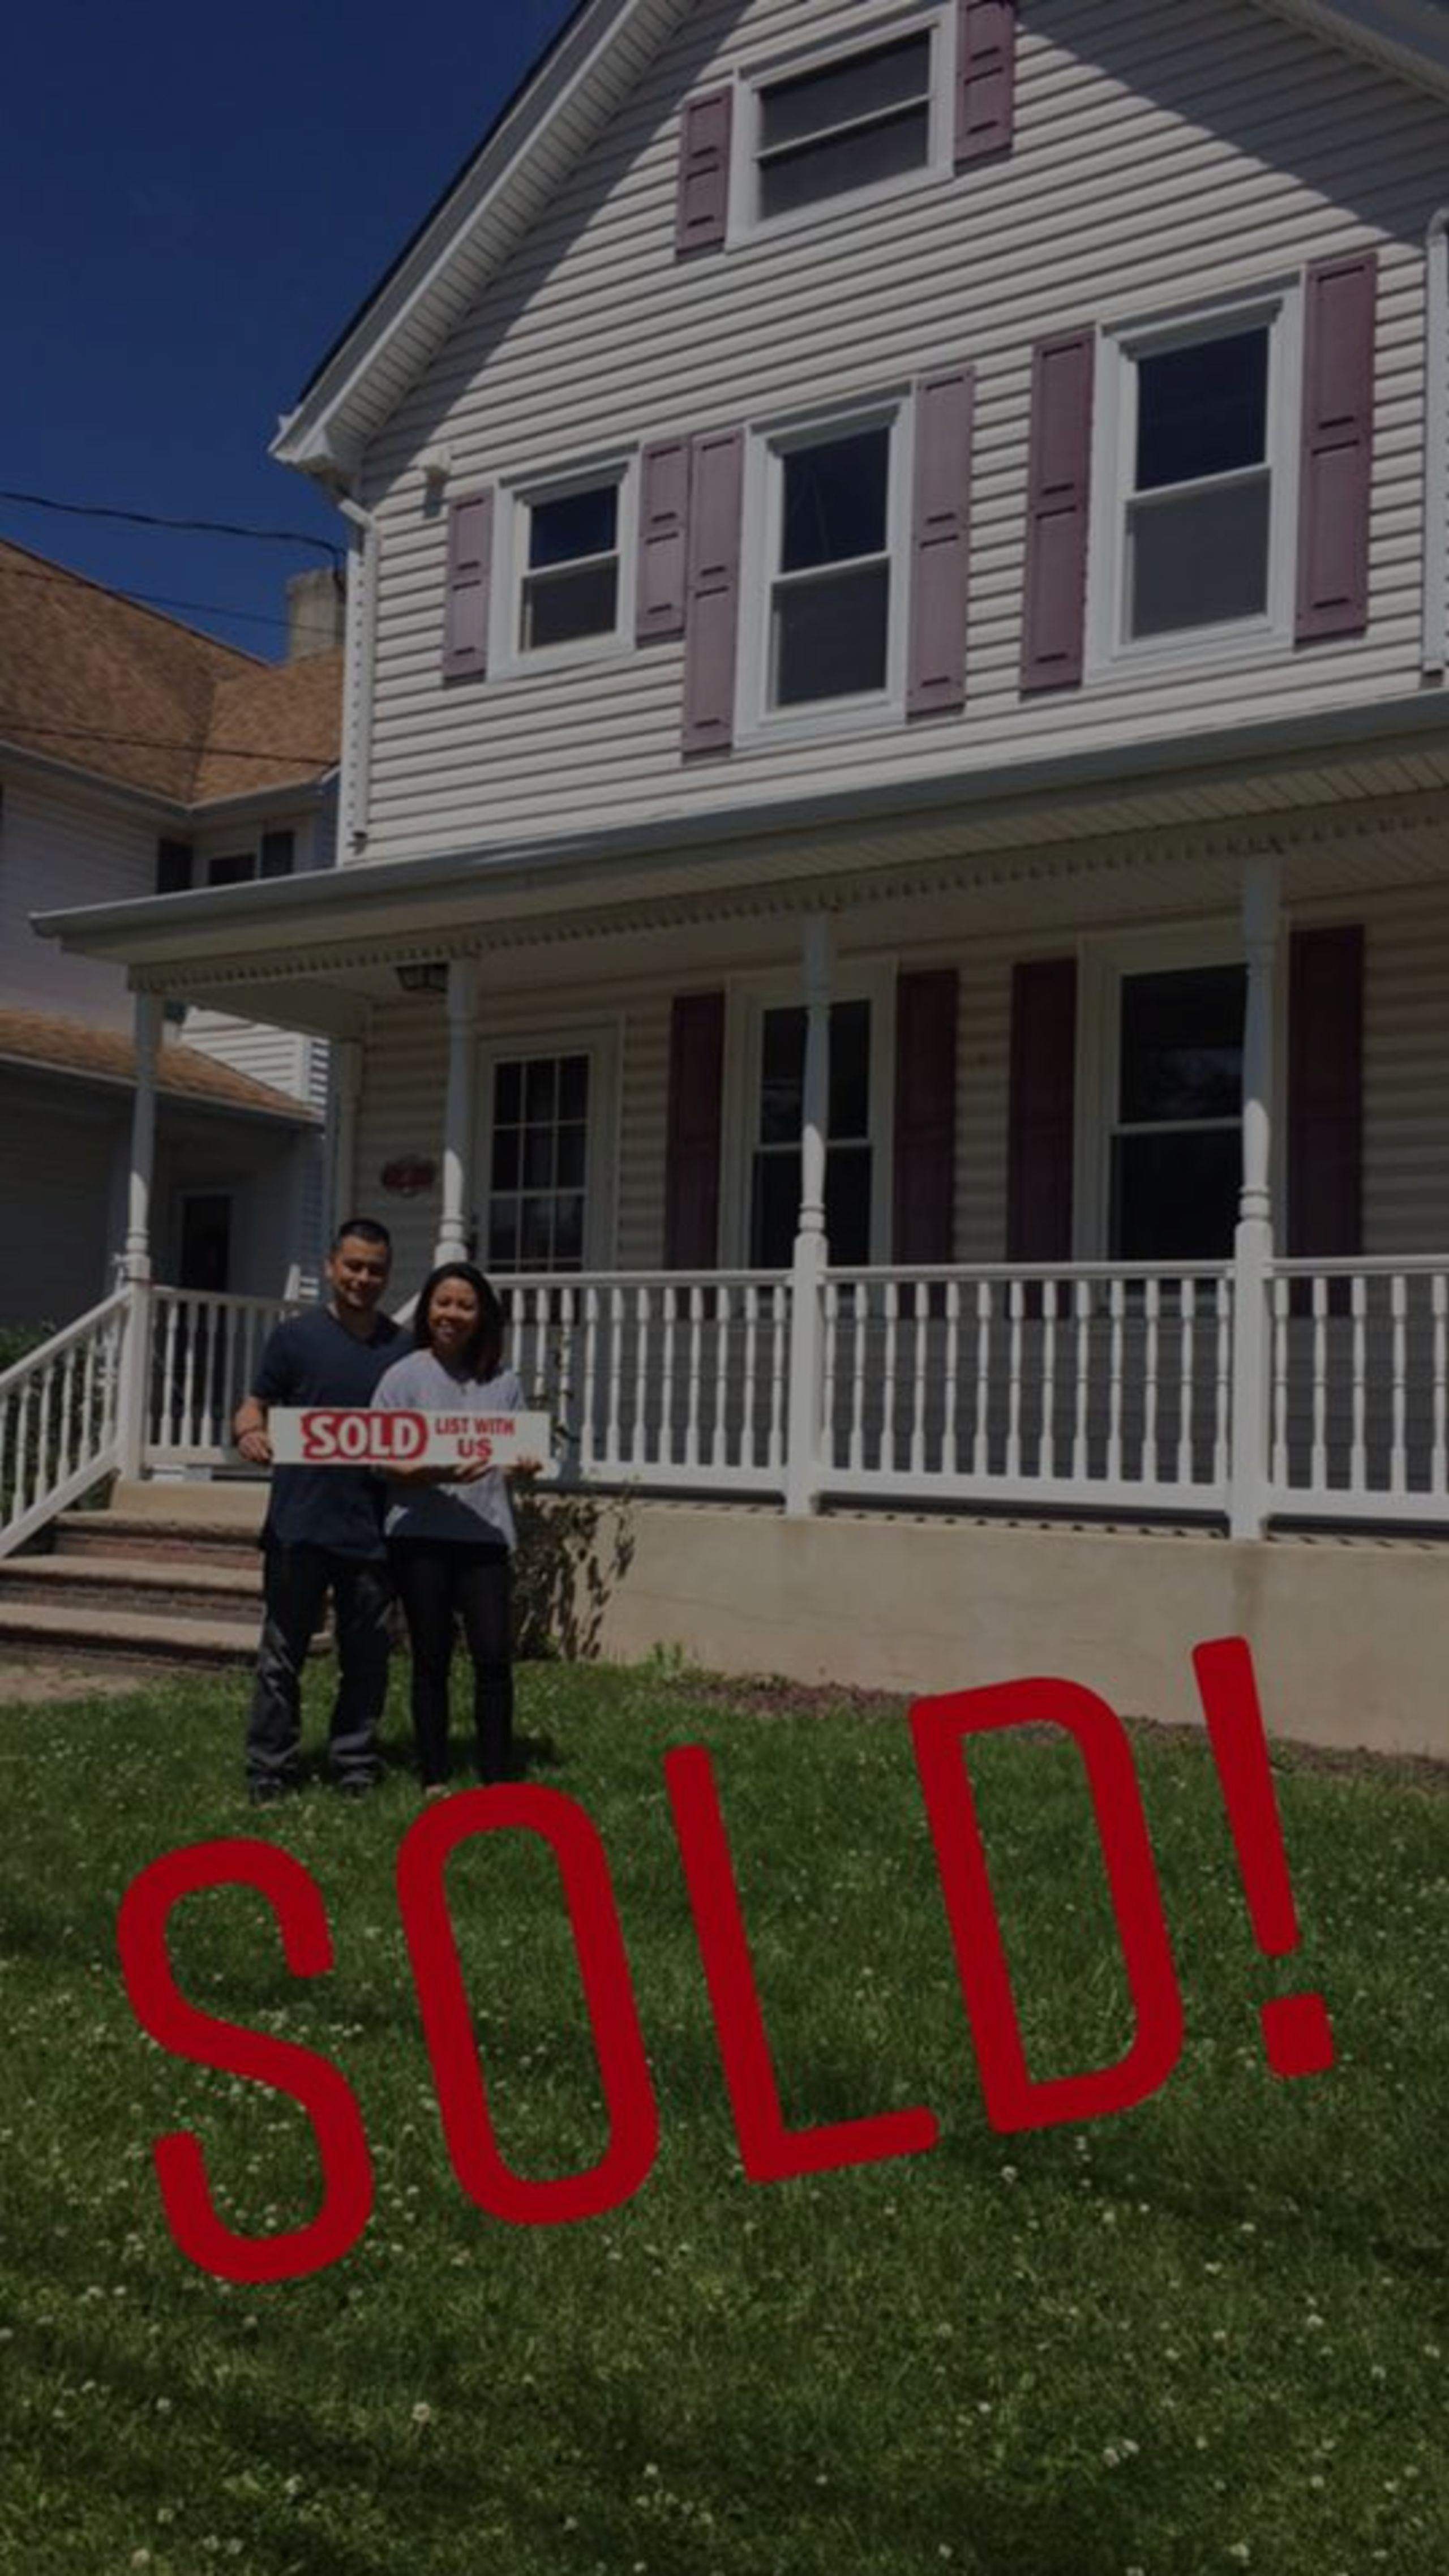 Congrats to our buyers and sellers!